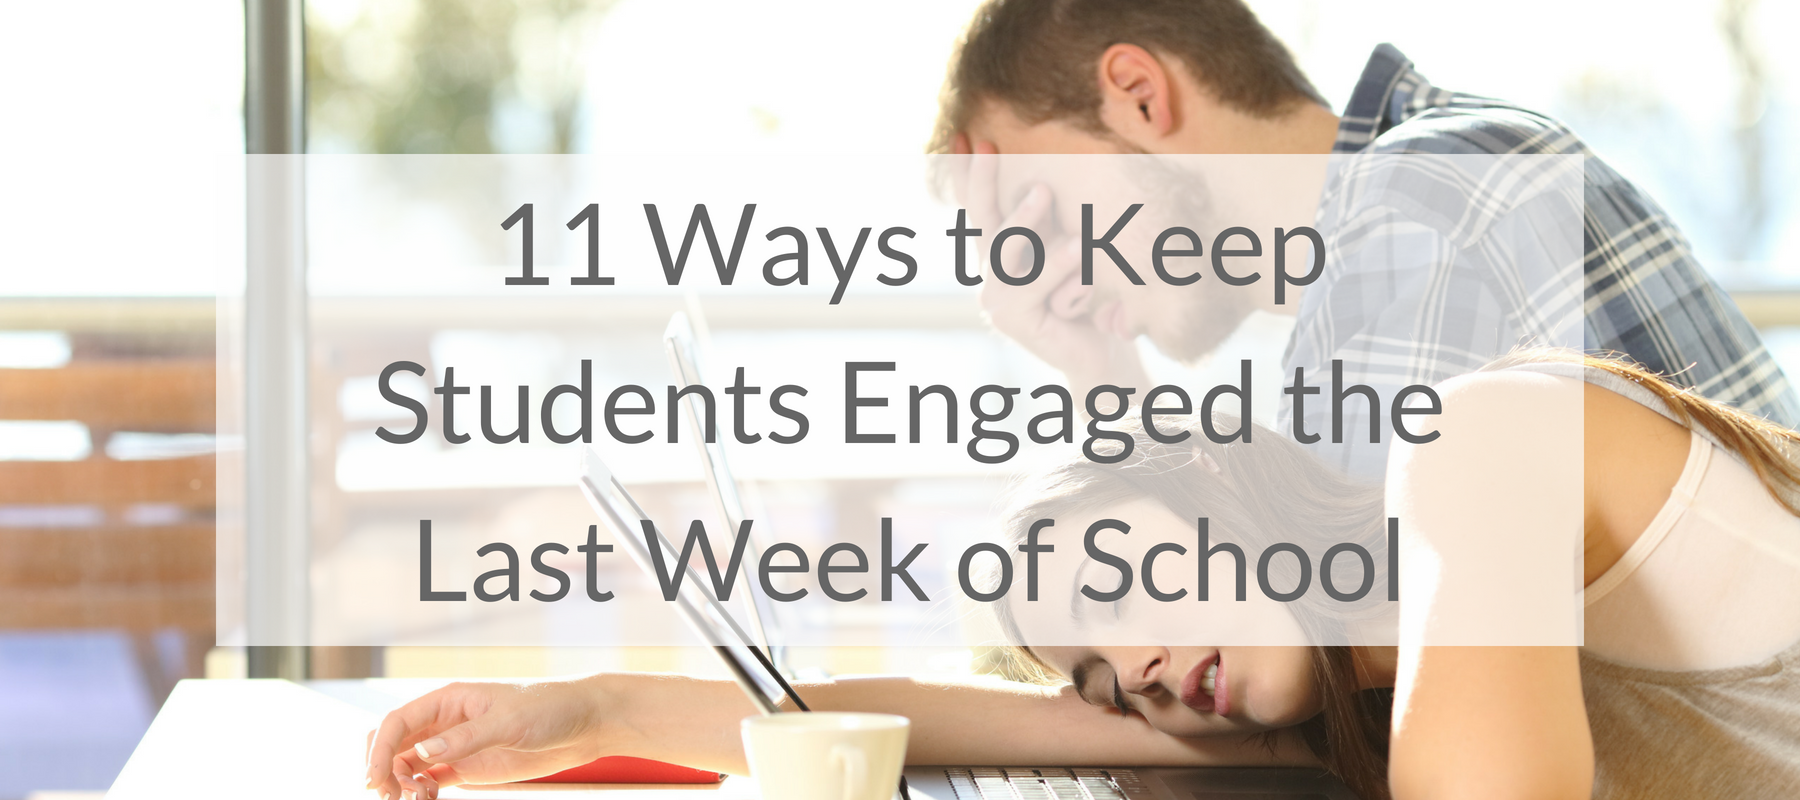 11 Ways to Keep Students Engaged the Last Week of School